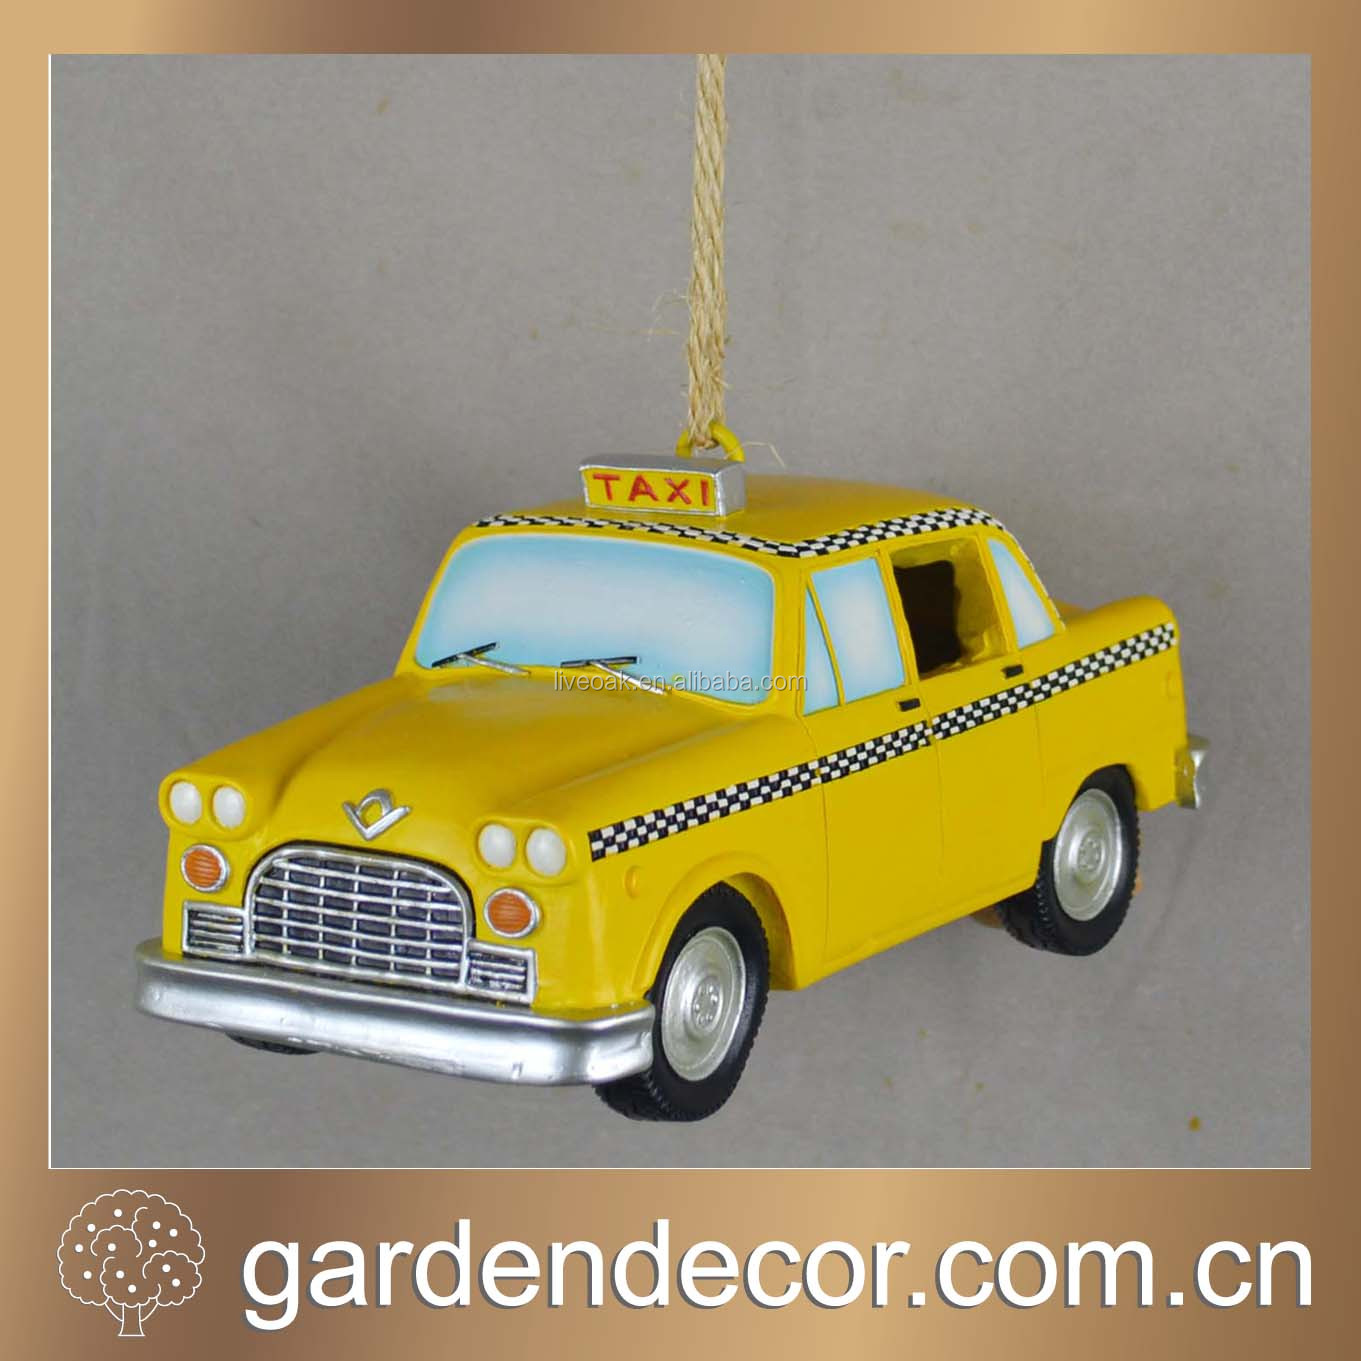 Decorative Taxi Resin Bird Houses